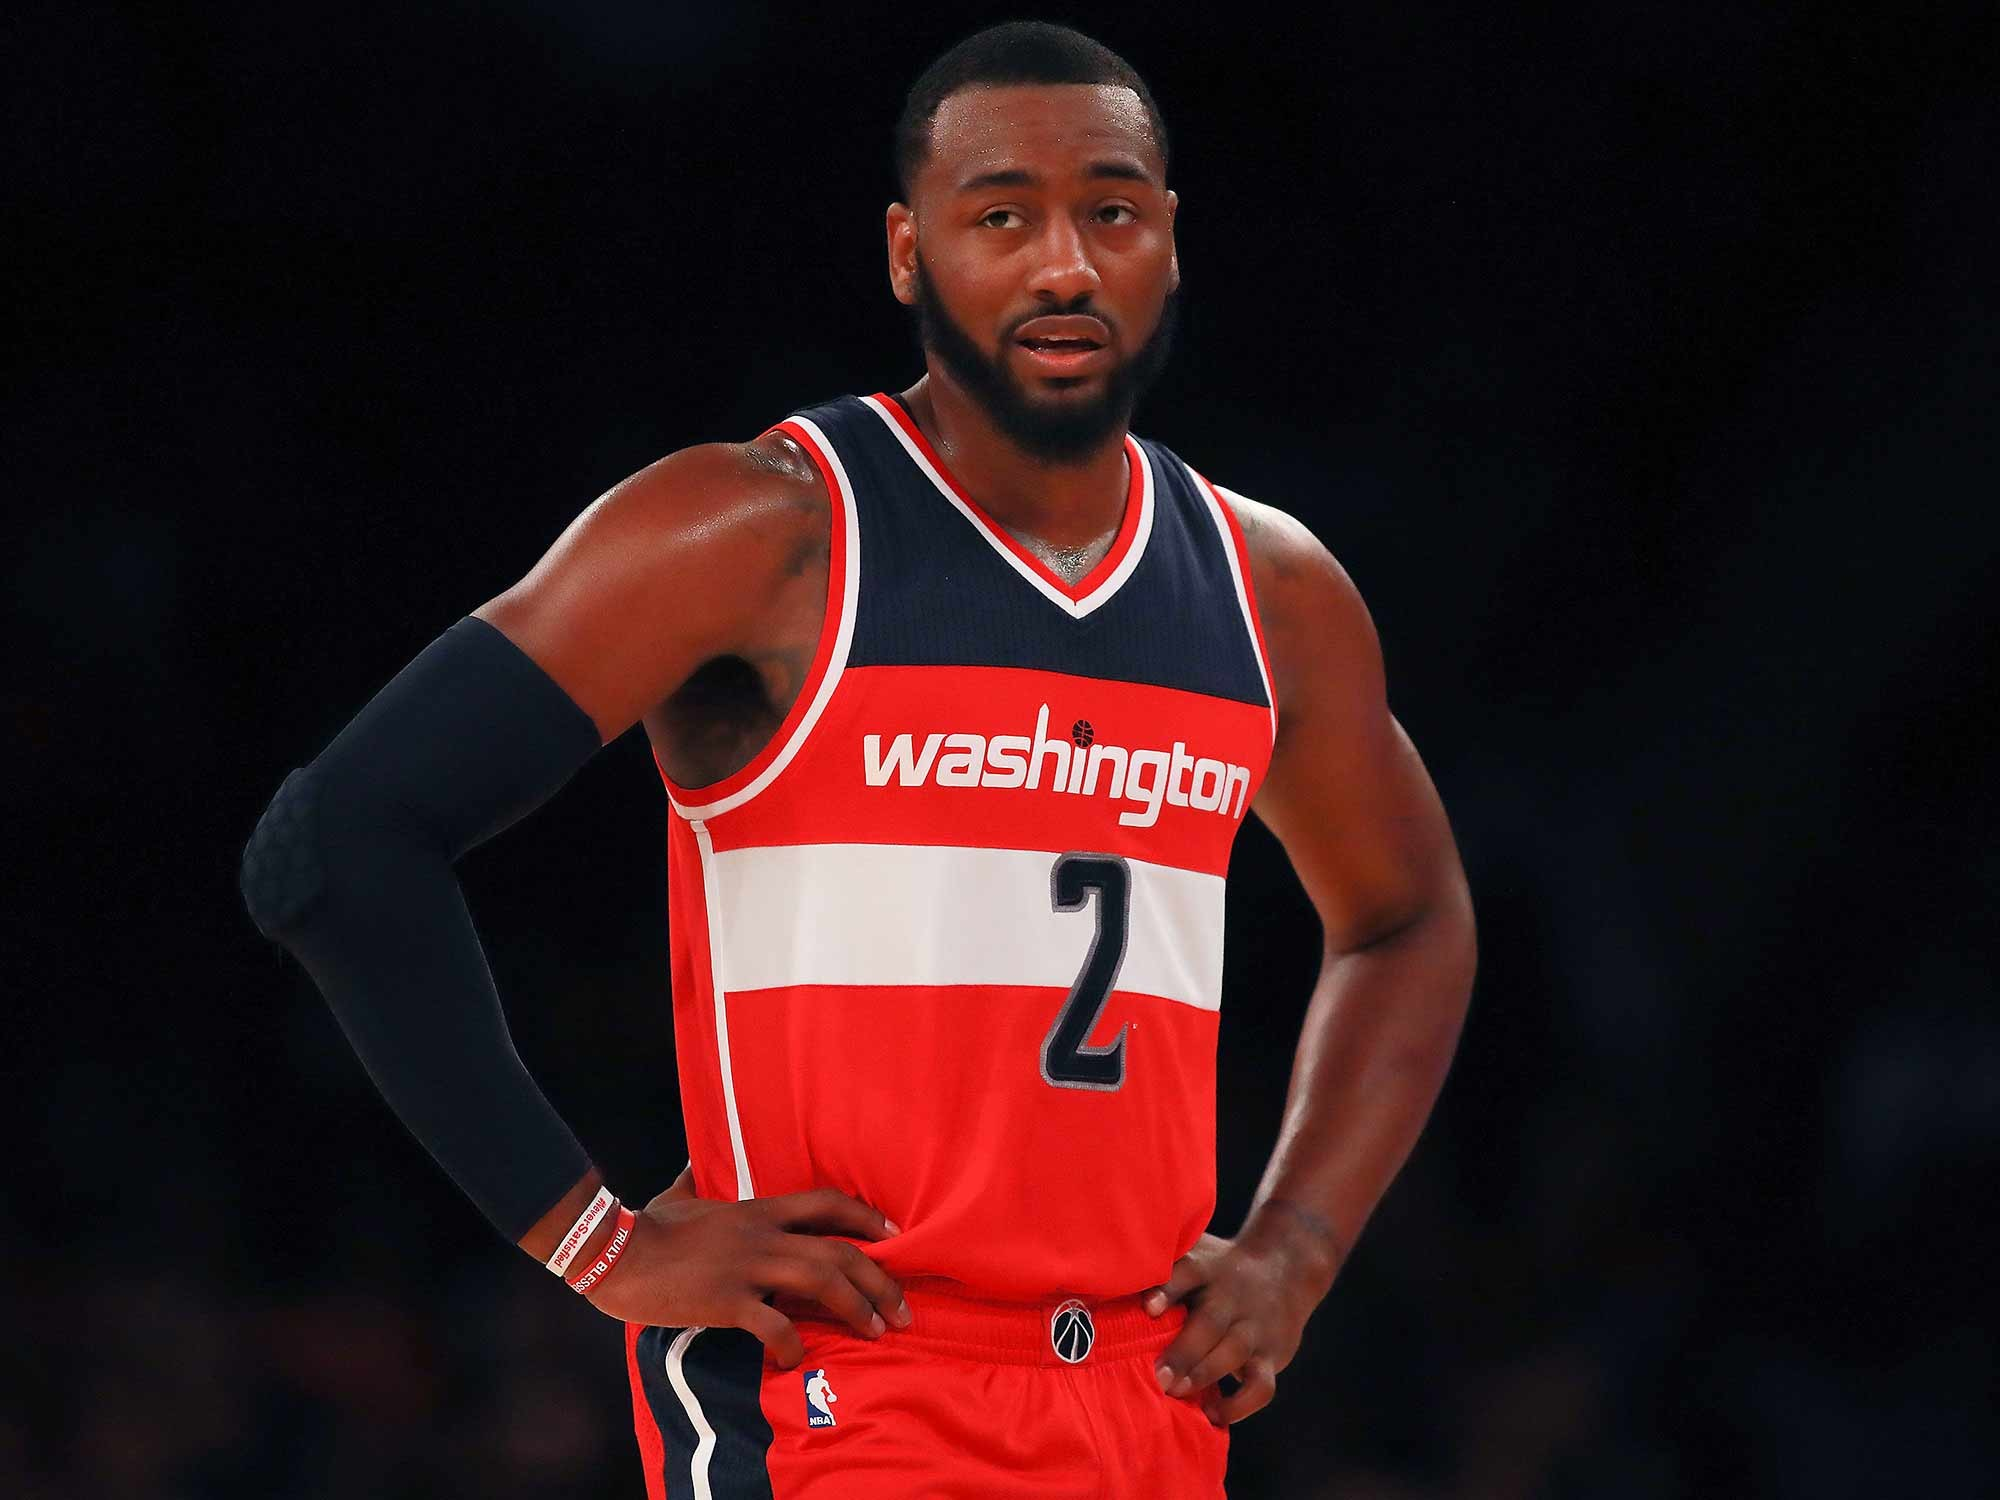 John Wall Q&A: 'They Still Don't Respect Me'